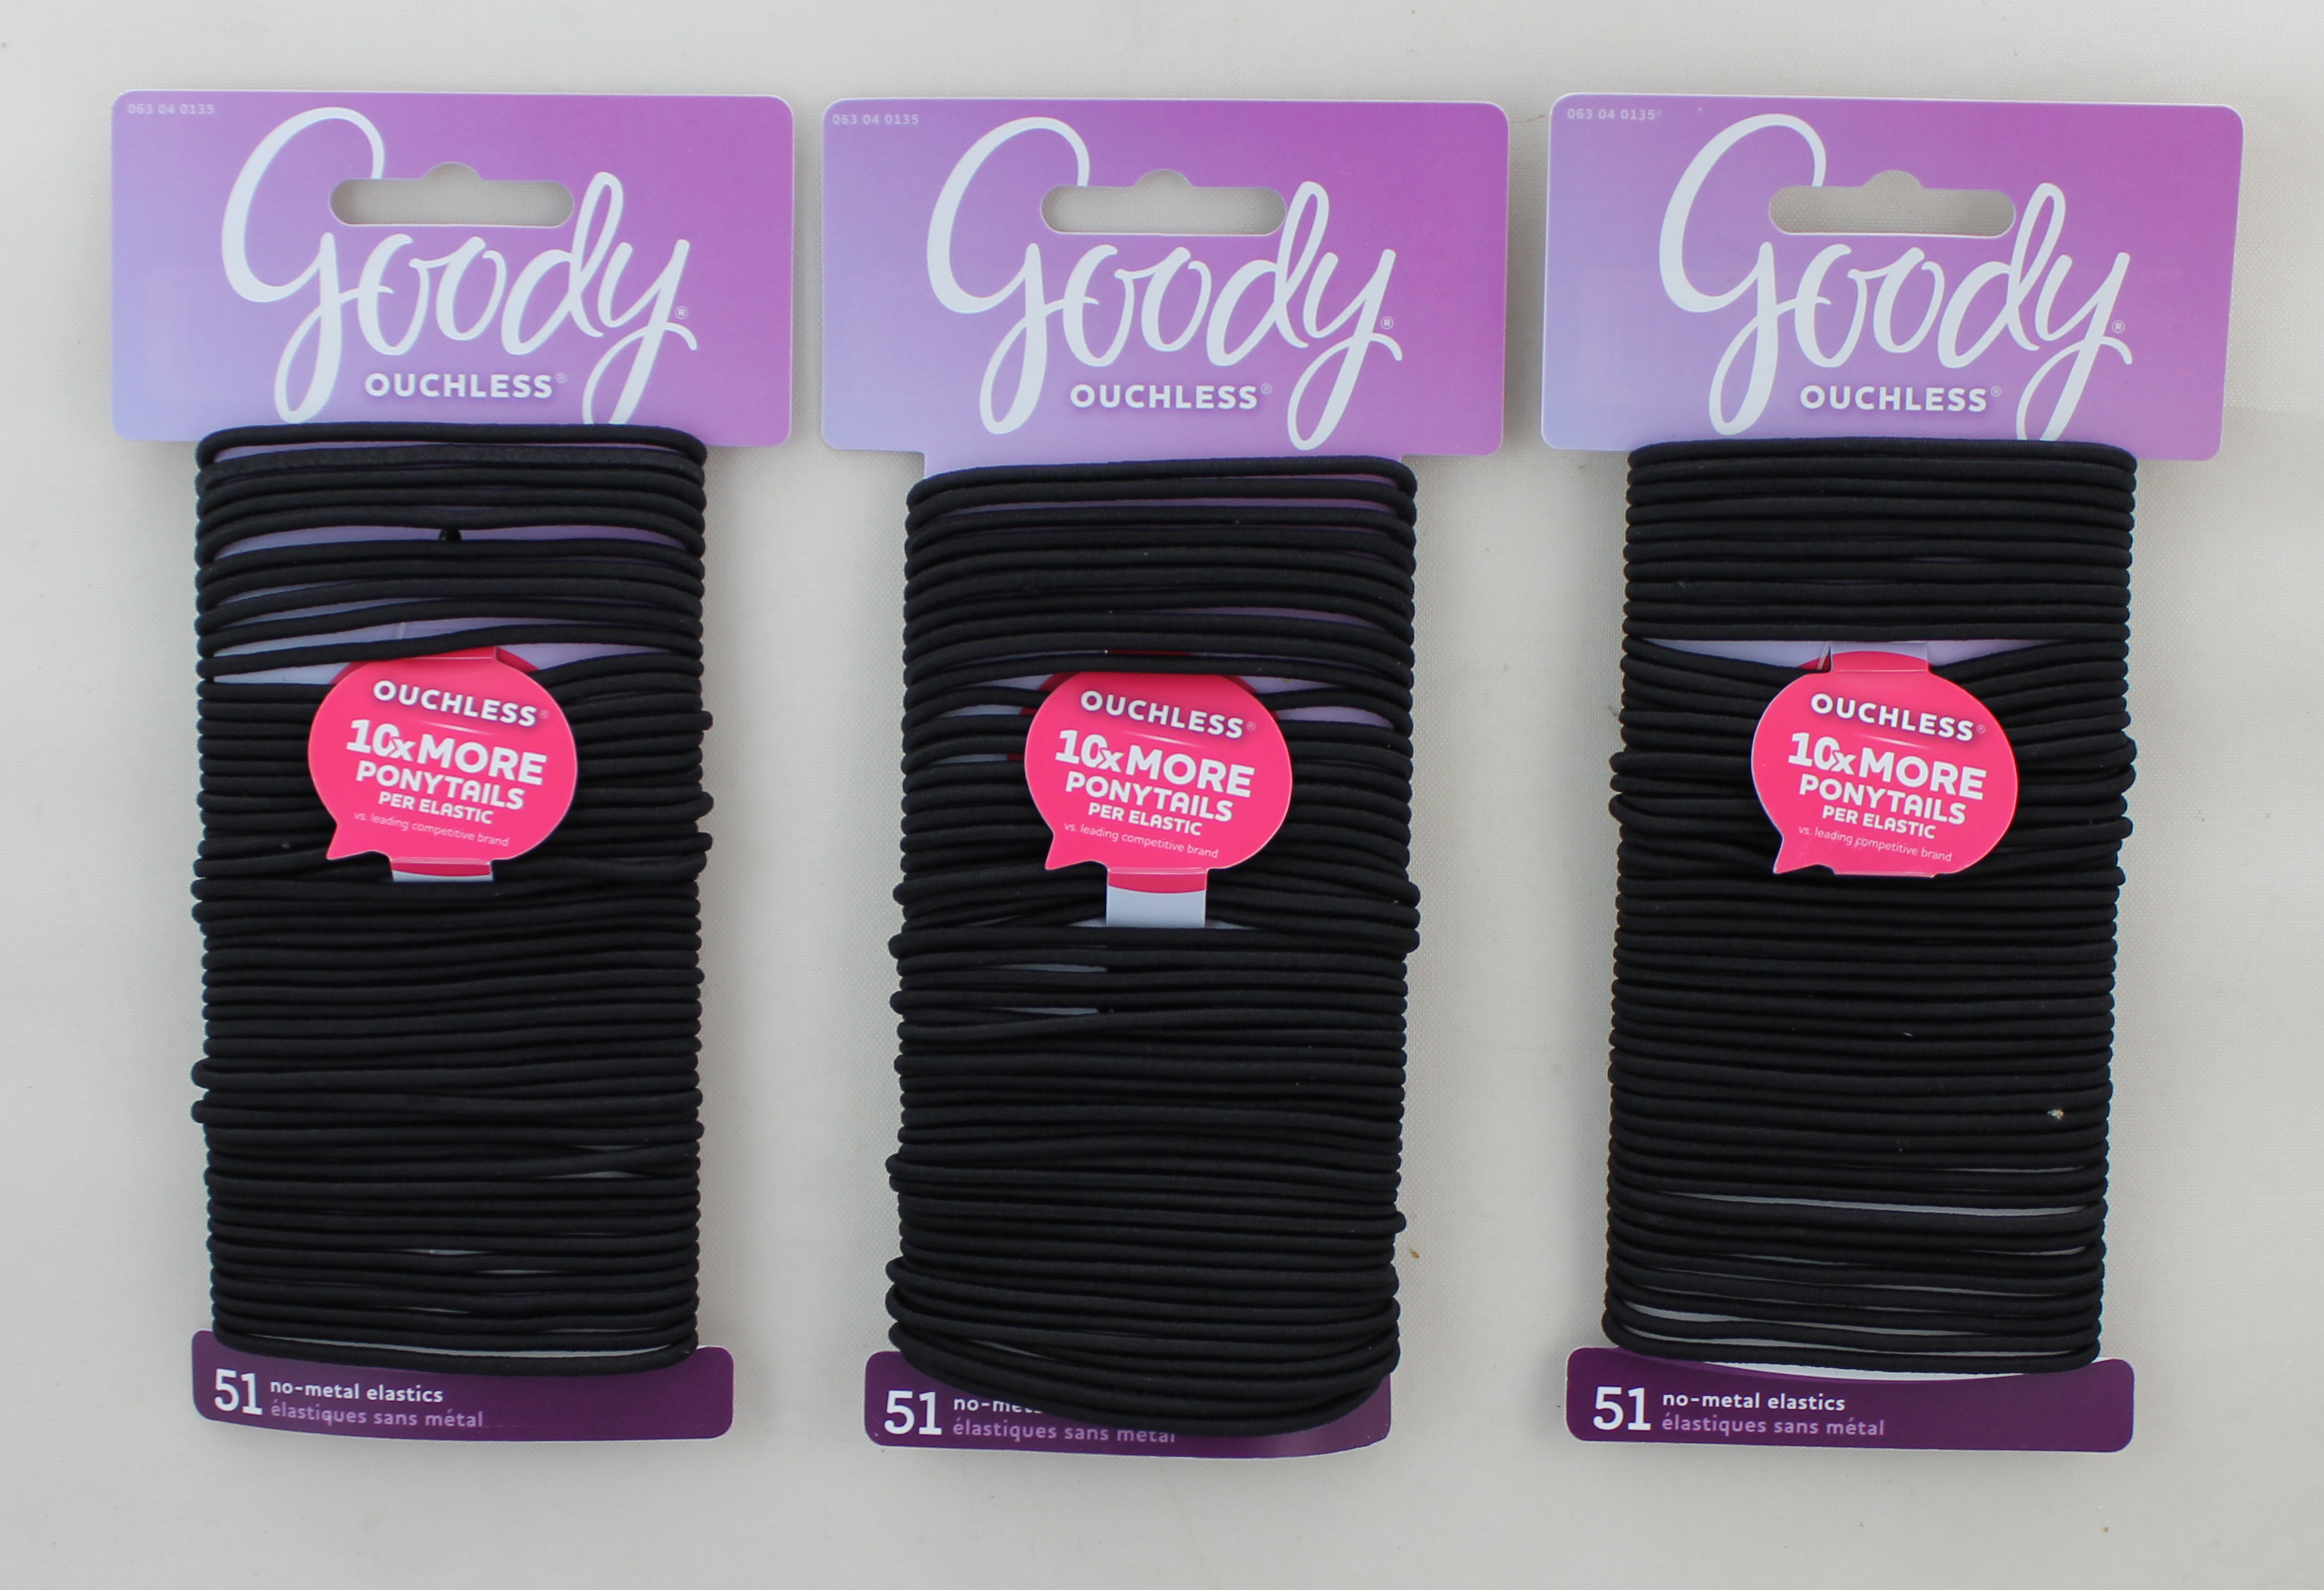 Goody Thin 2MM Black Elastics, Ouchless, NO Metal 51 Count Packs.